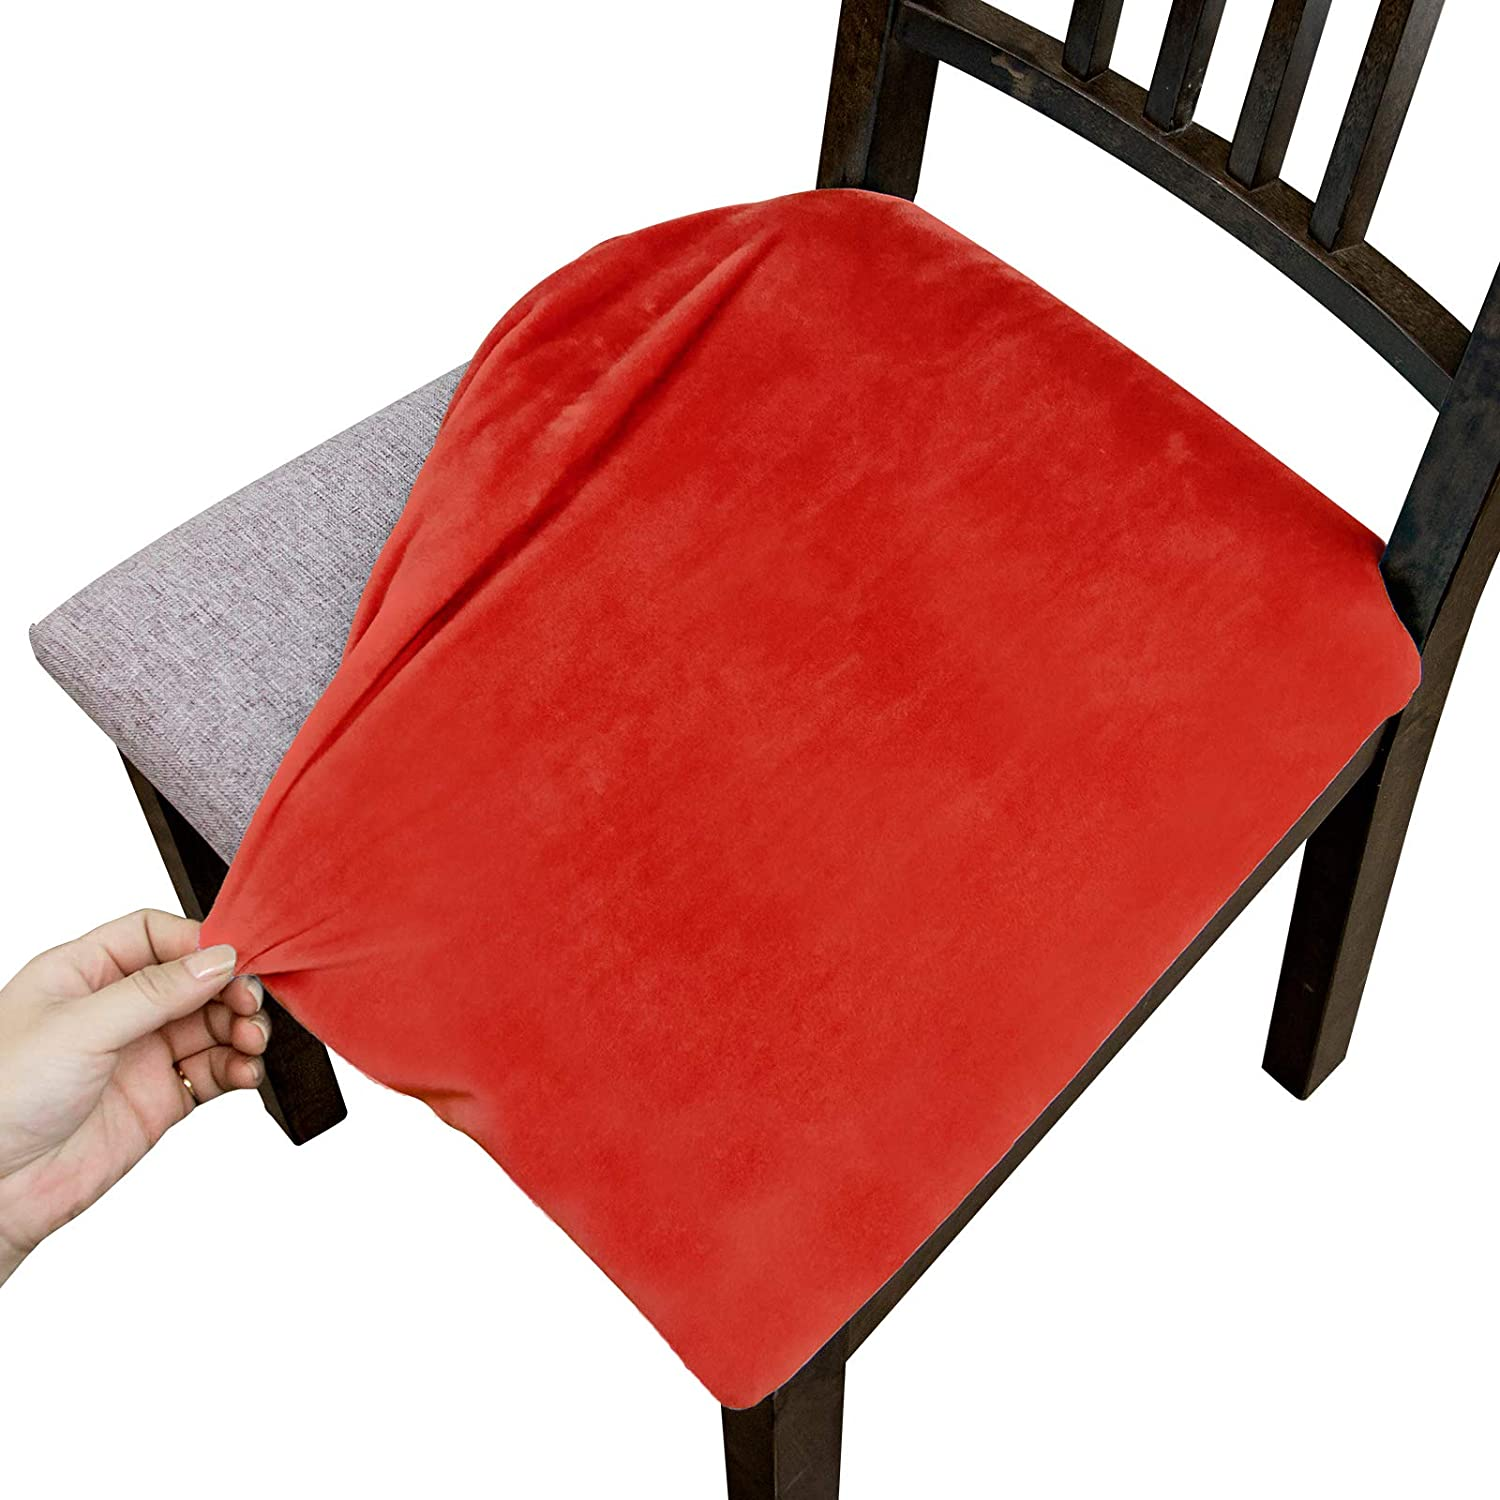 Argstar 6 Pack Velvet Seat List price Covers for Room Chairs Dining Plush outlet